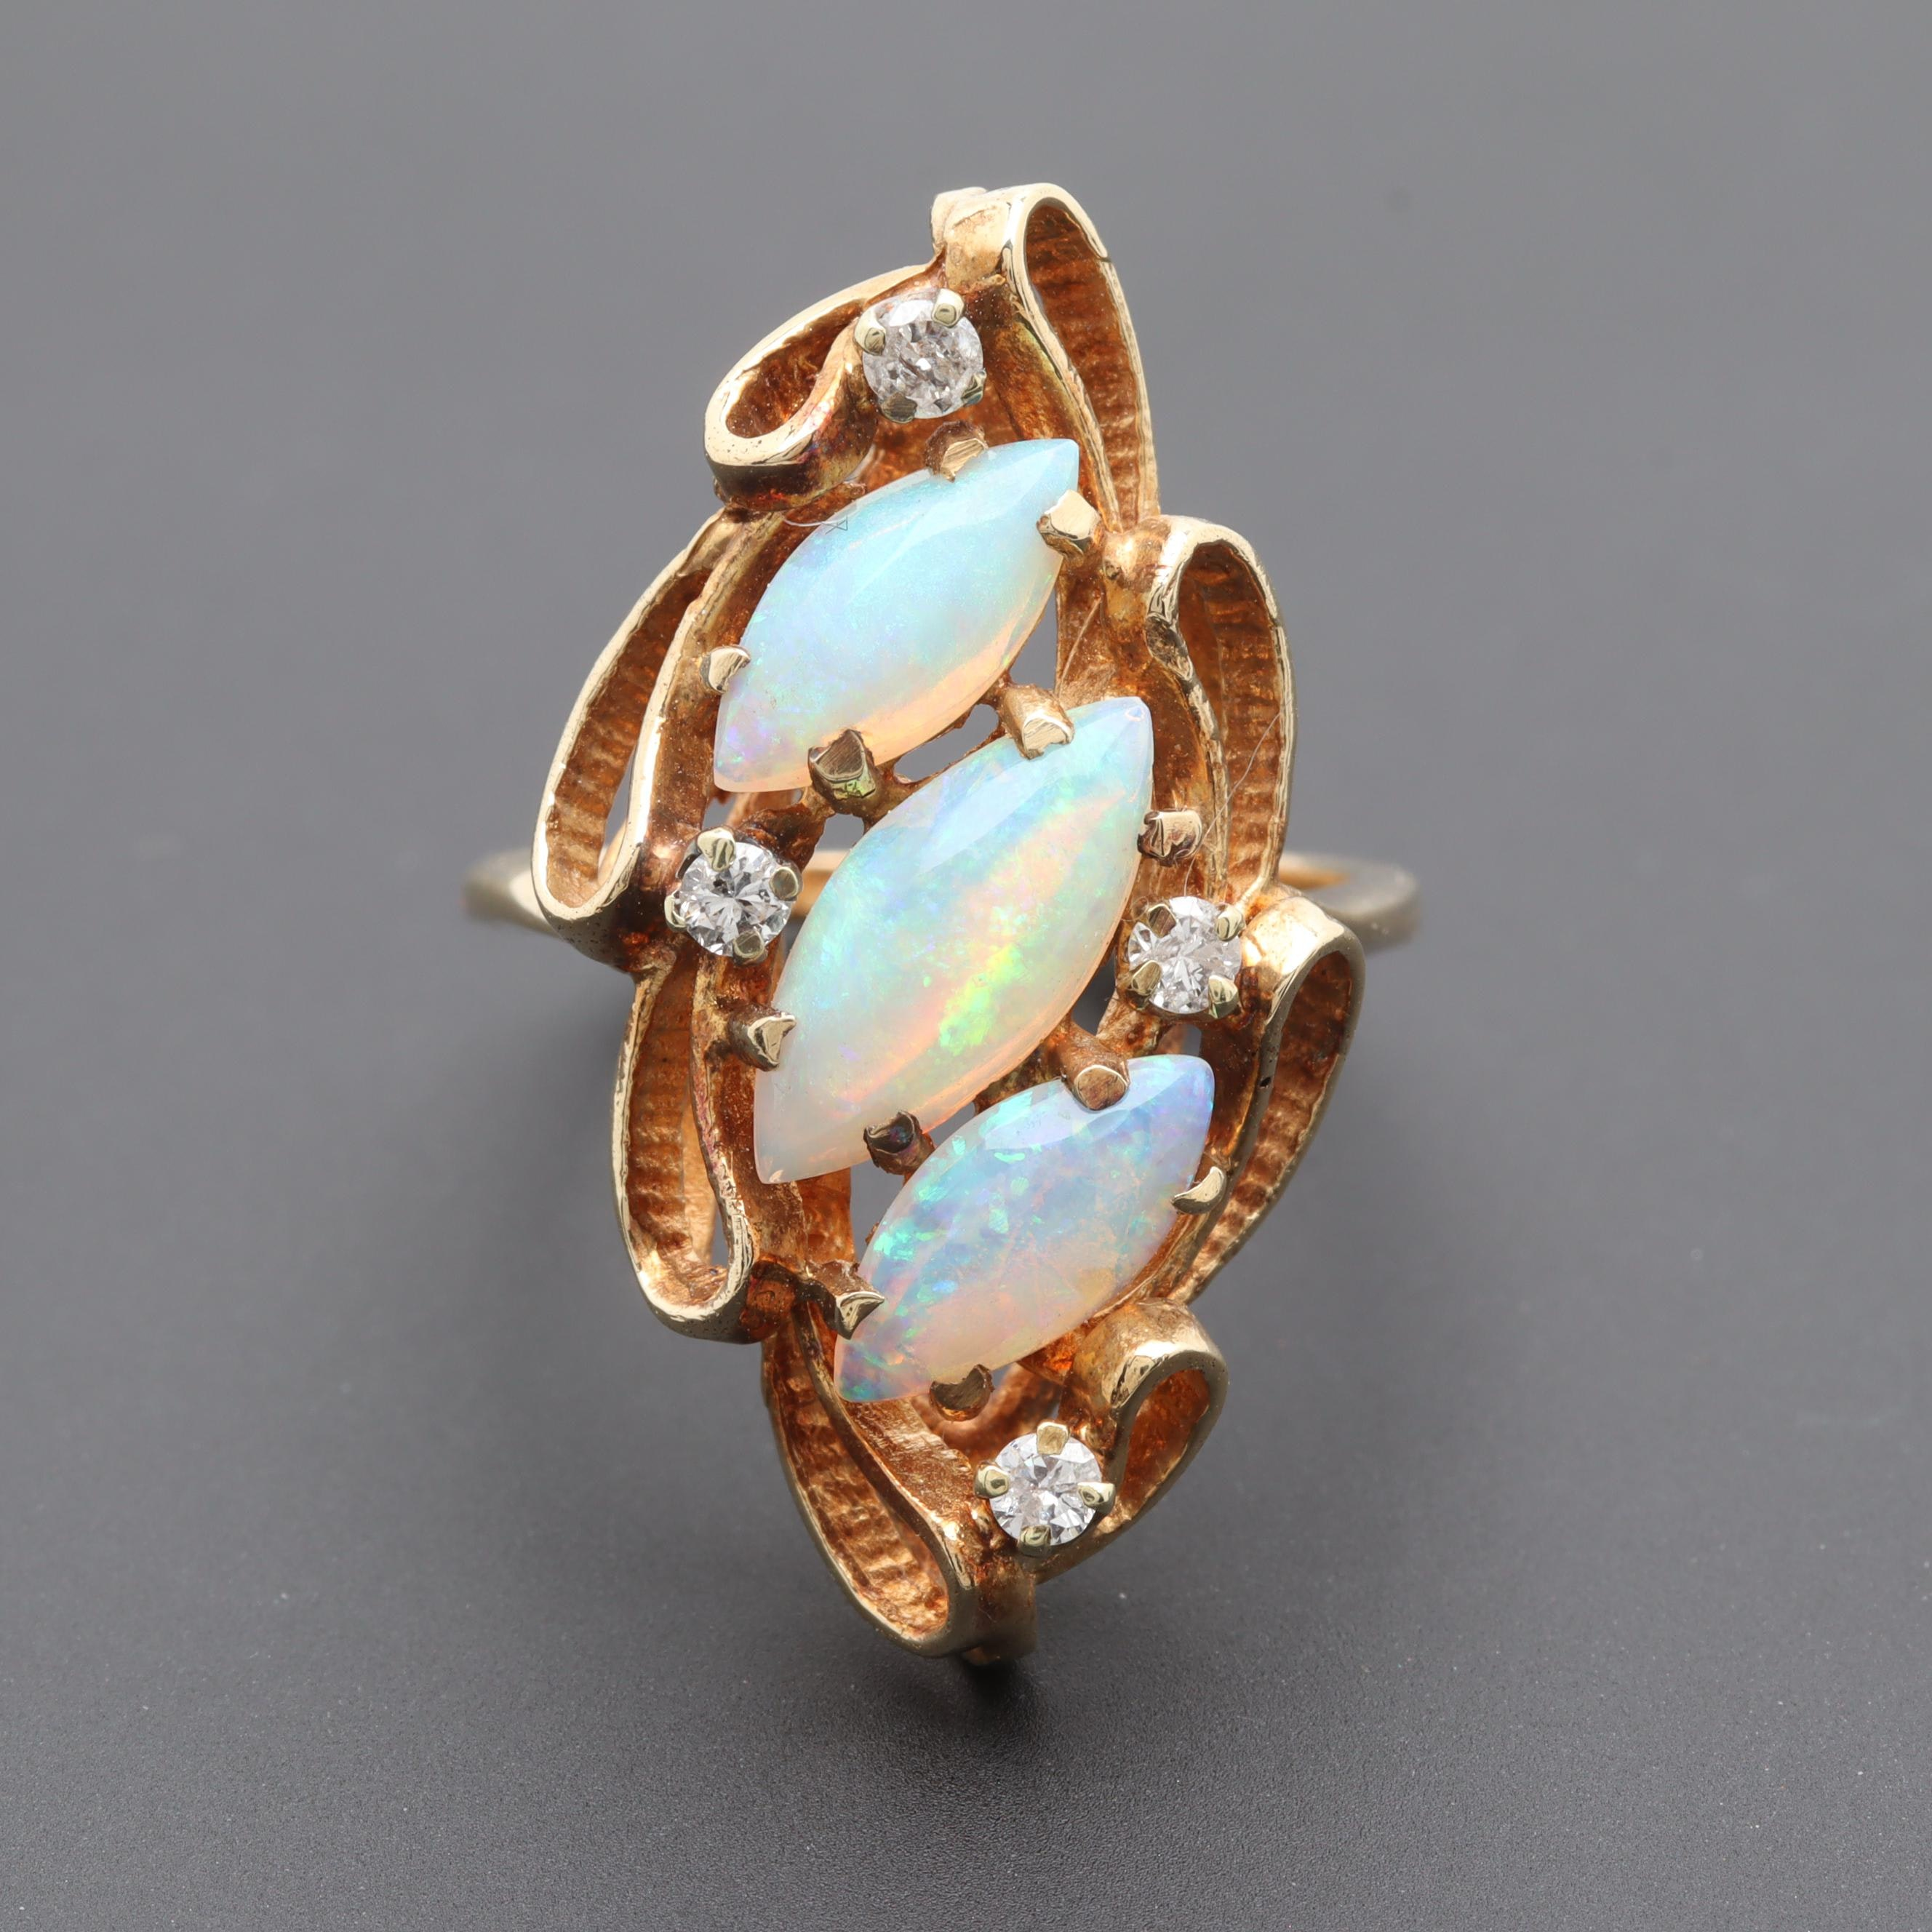 Circa 1960s - 1970s 14K Yellow Gold Opal and Diamond Ring